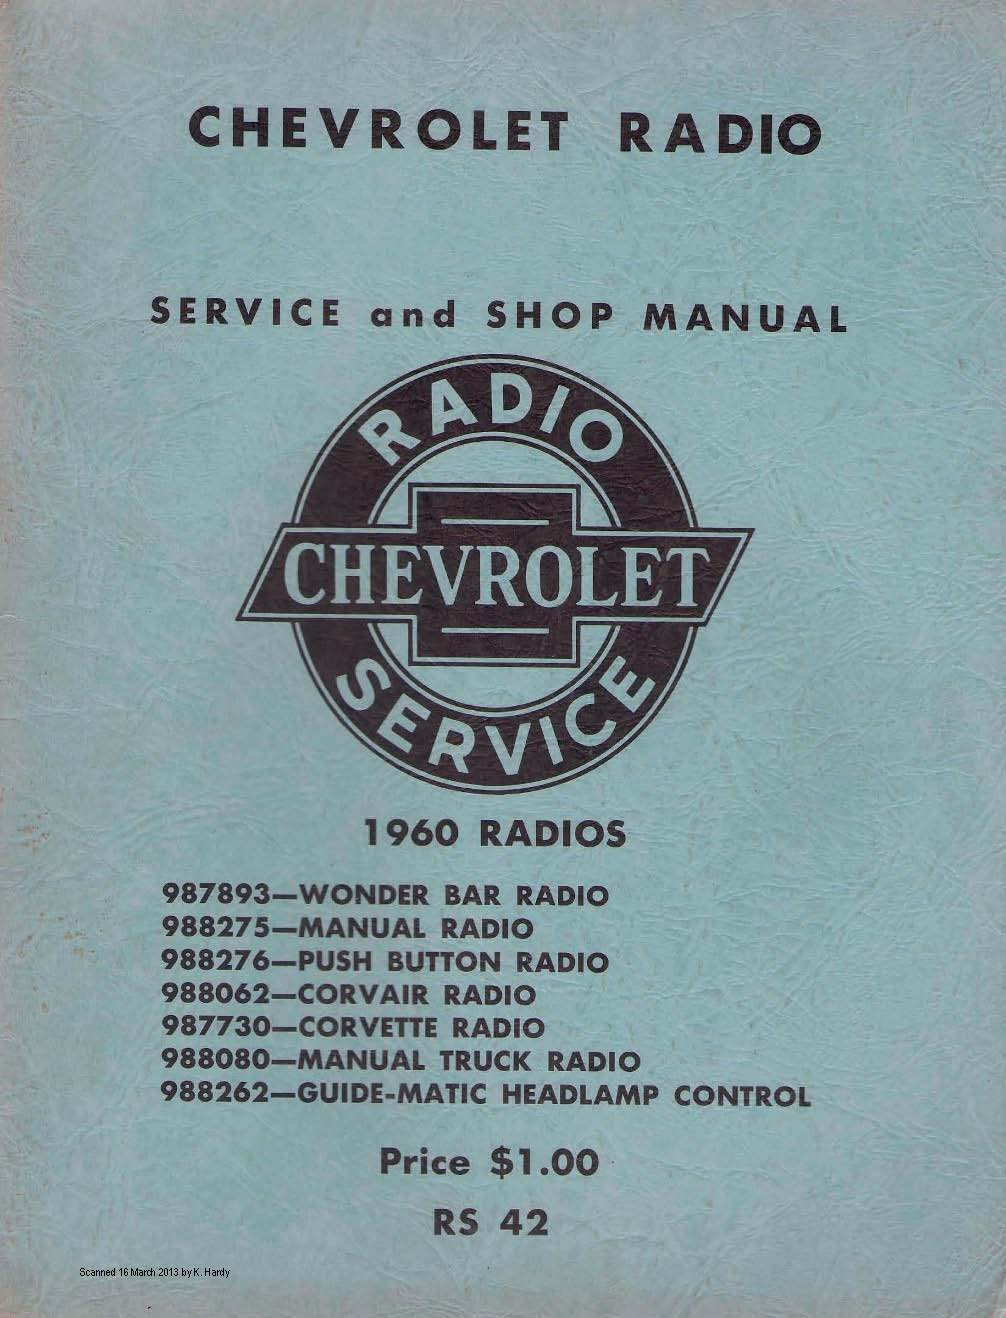 Wonder Bar Radio Circuit Diagram For The 1960 Chevrolet Passenger Car